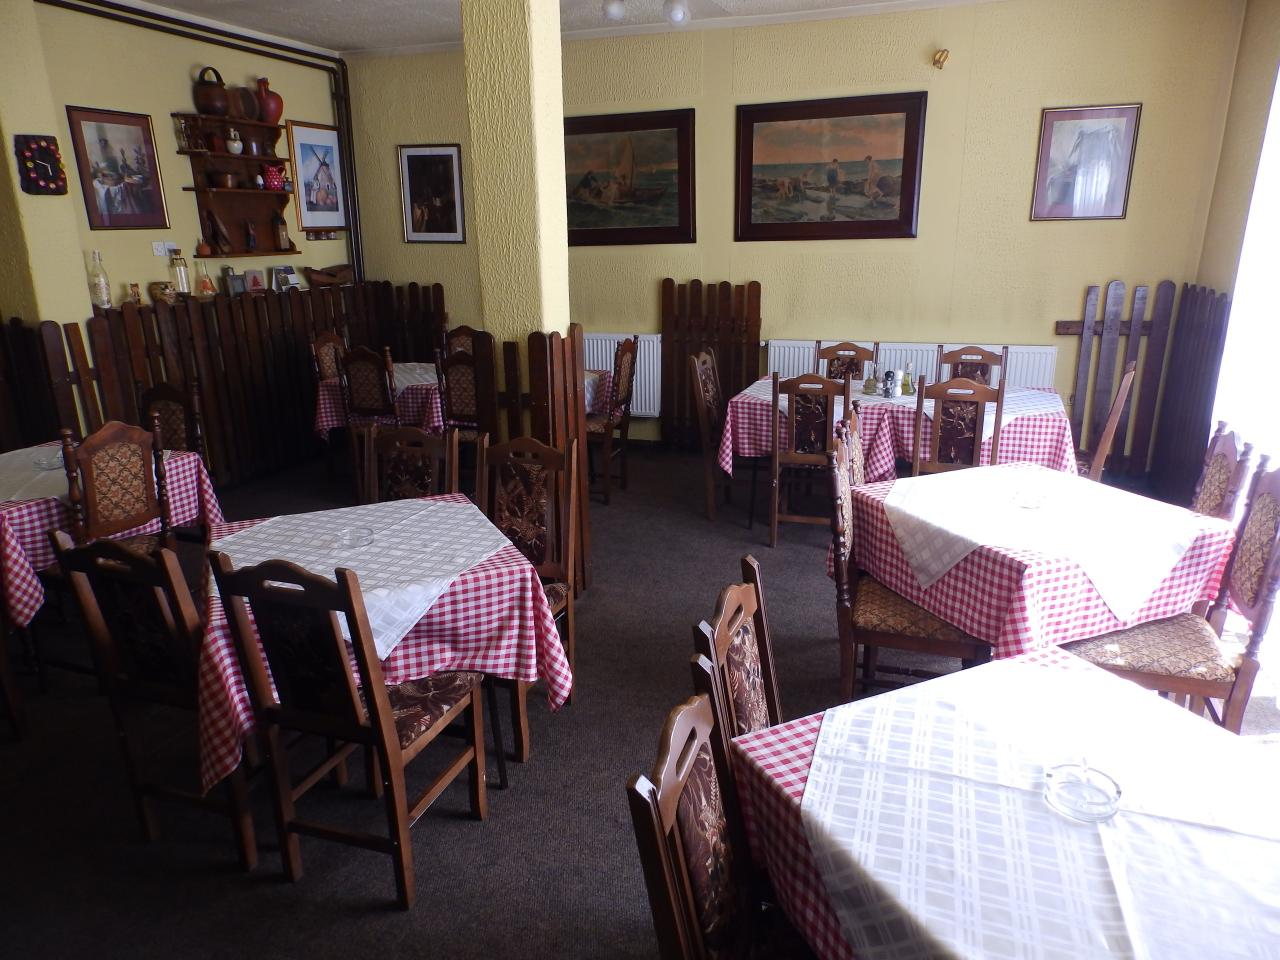 TAVERN OLD PROMENADE Restaurants Sremska Mitrovica - Photo 3